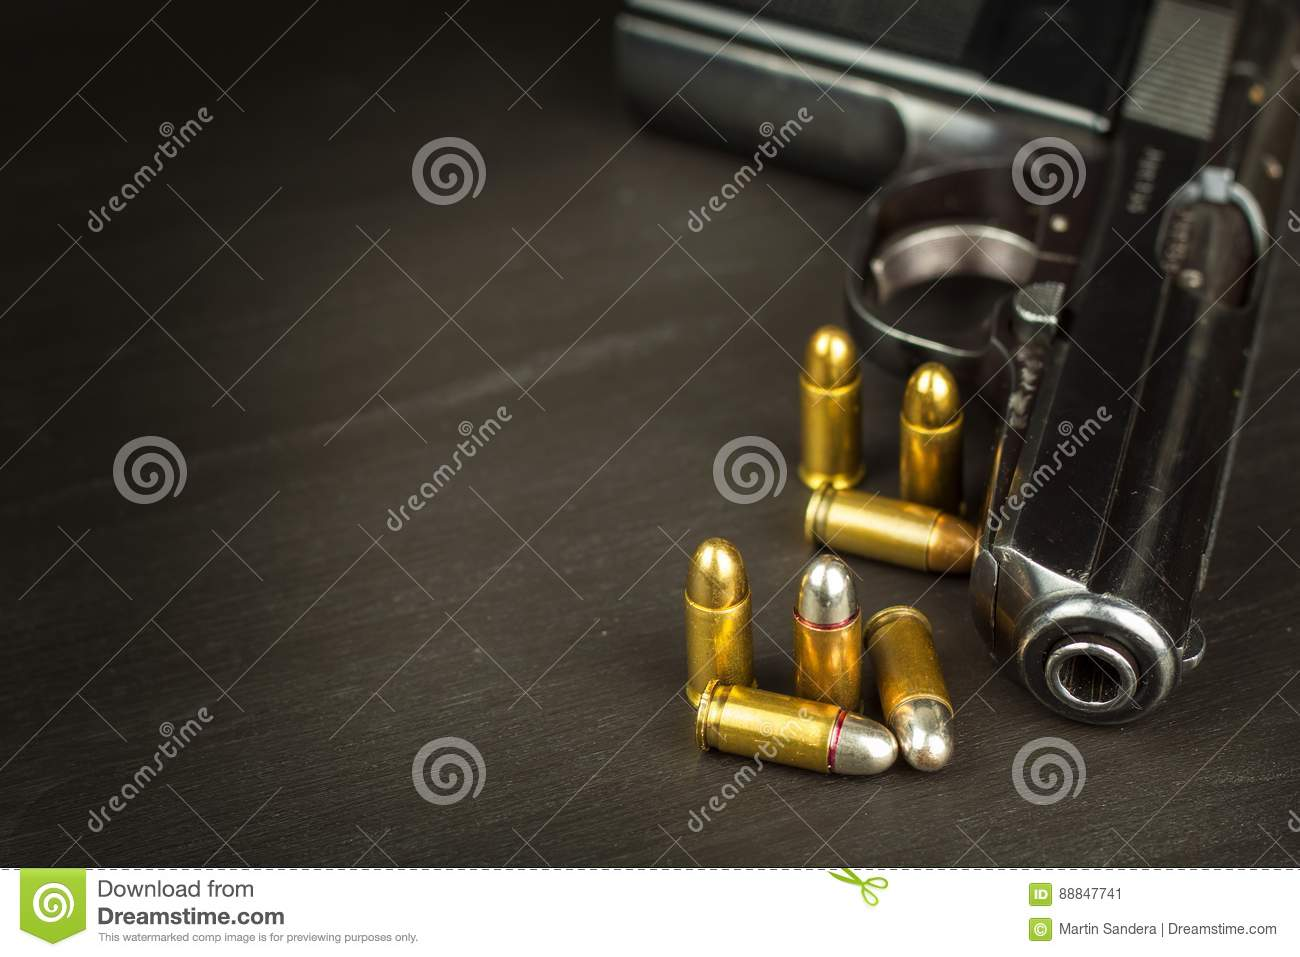 Right to bear arms. Arms control. Detail on the gun. Place for your text. Sales of firearms.